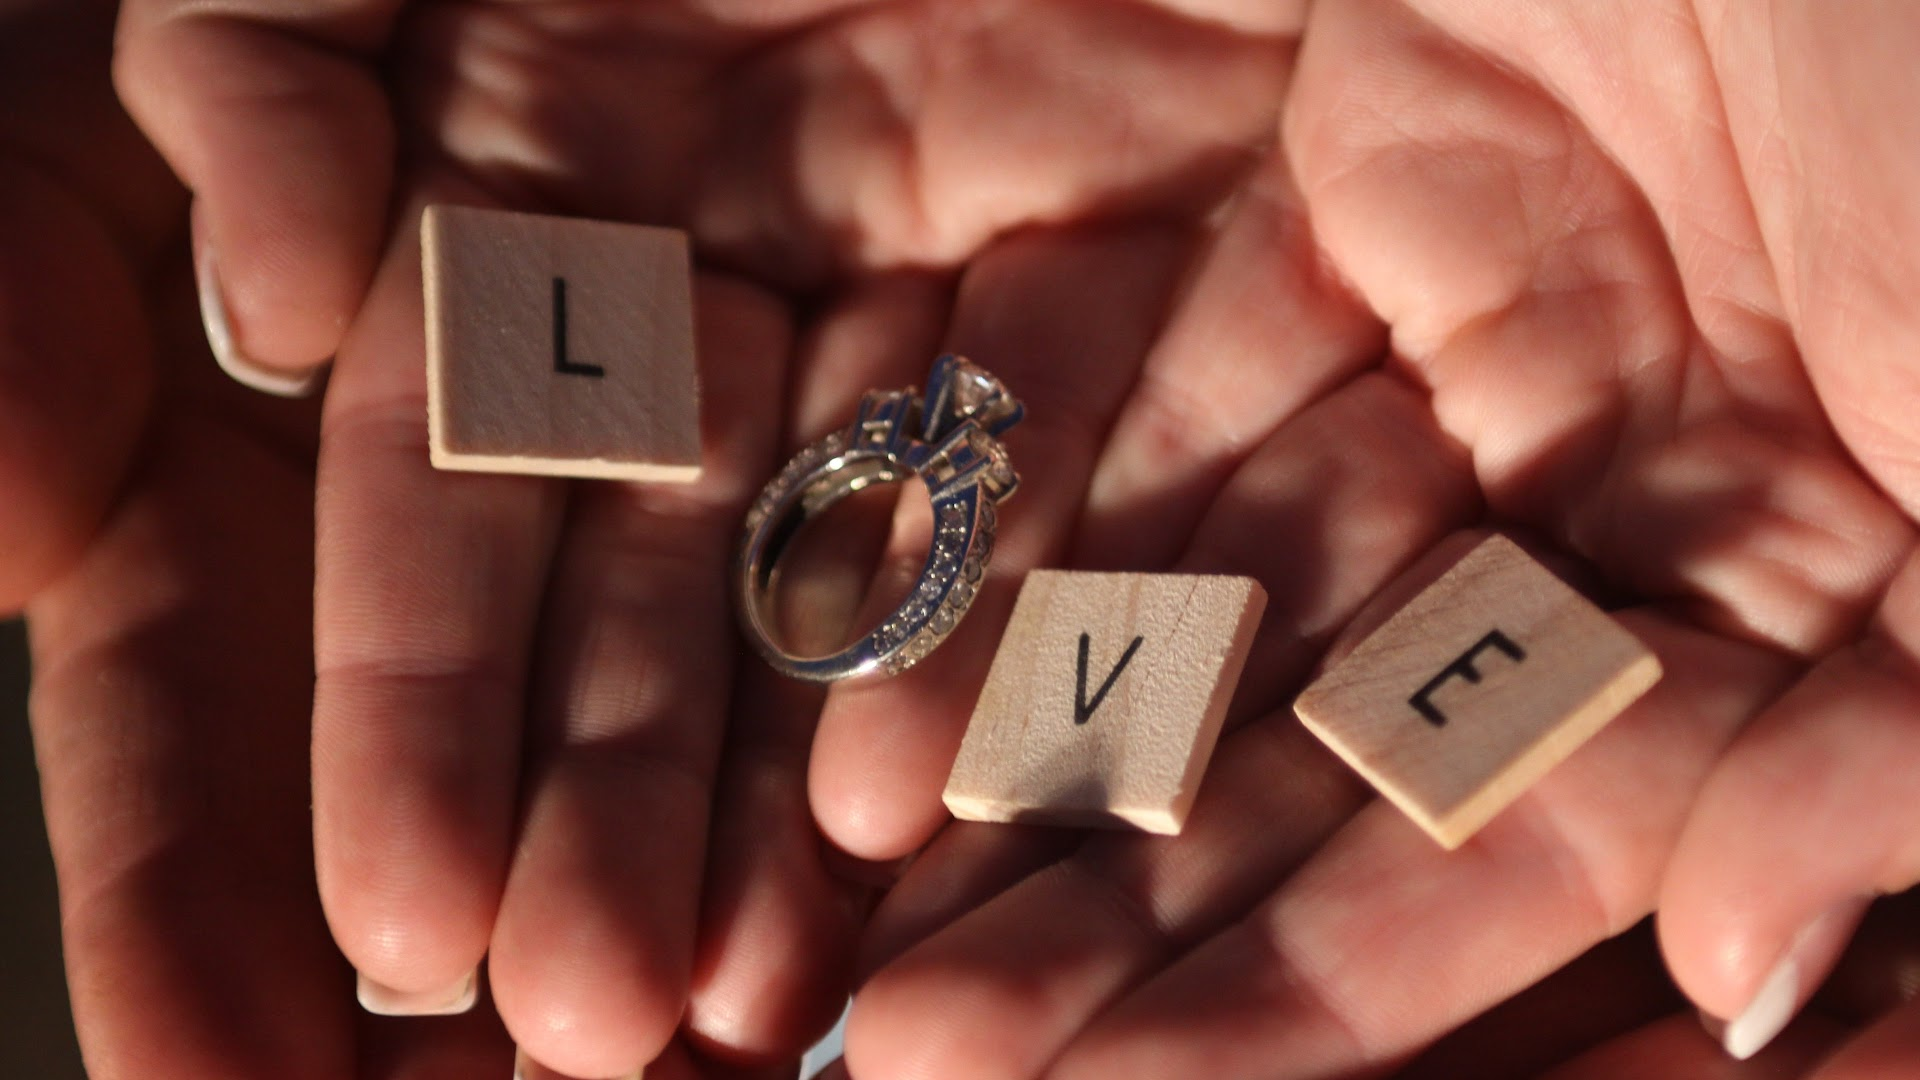 Hd wallpaper you need - 4k Hd Wallpaper Love And Engagement Ring If You Need